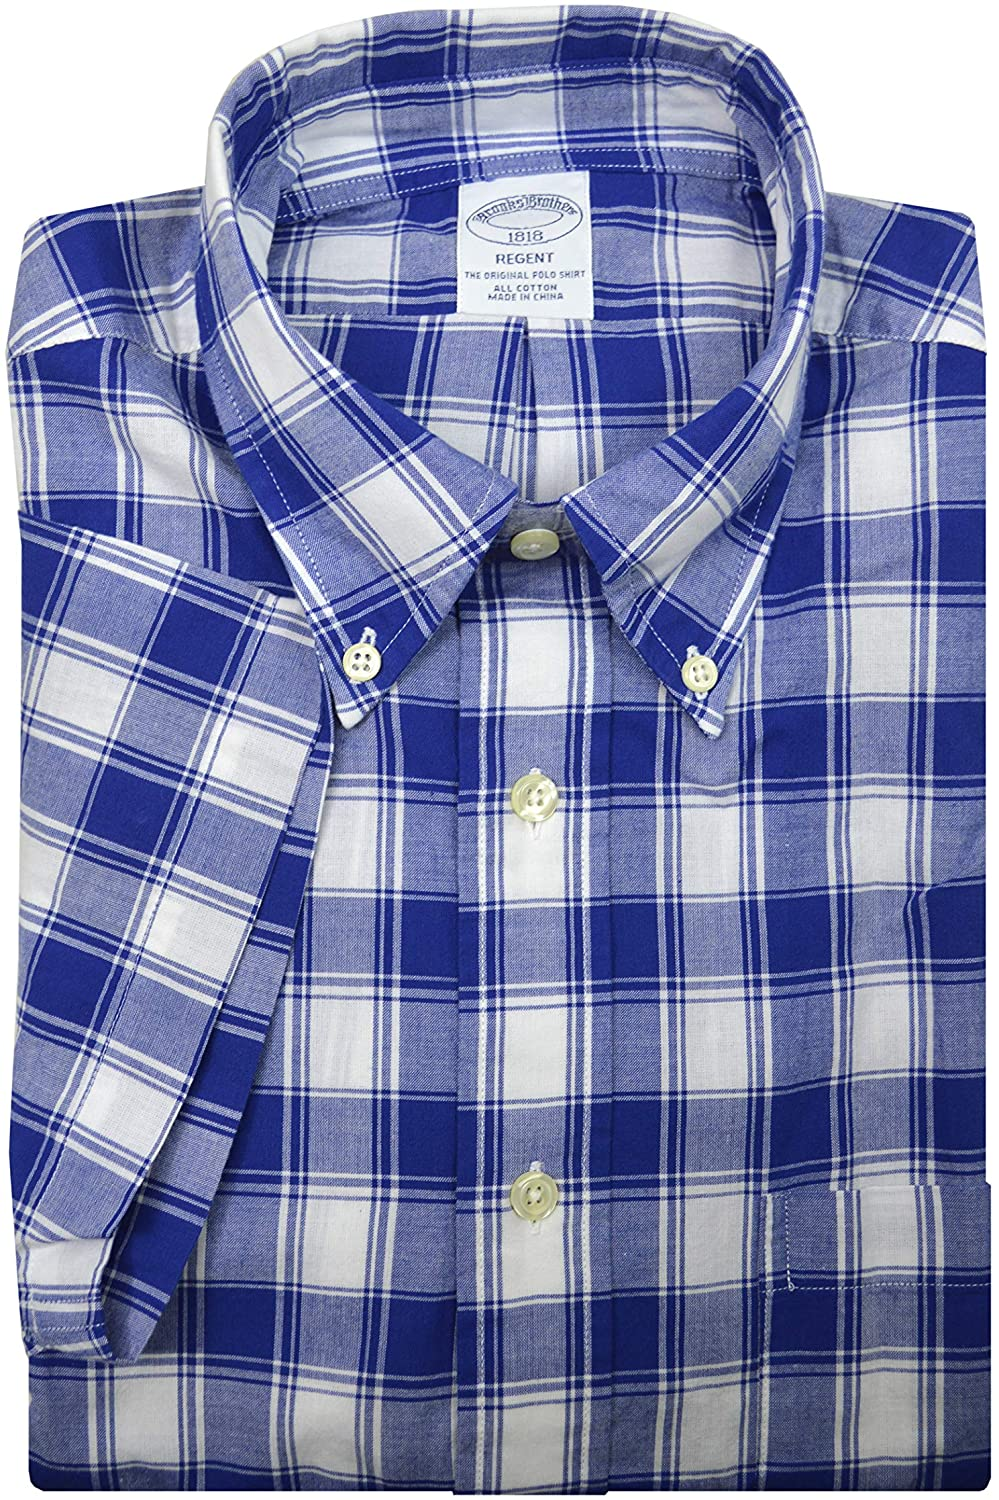 Brooks Brothers 65585 Regent Fit Floral Reverse Print S/S Button Down Shirt Blue Checked